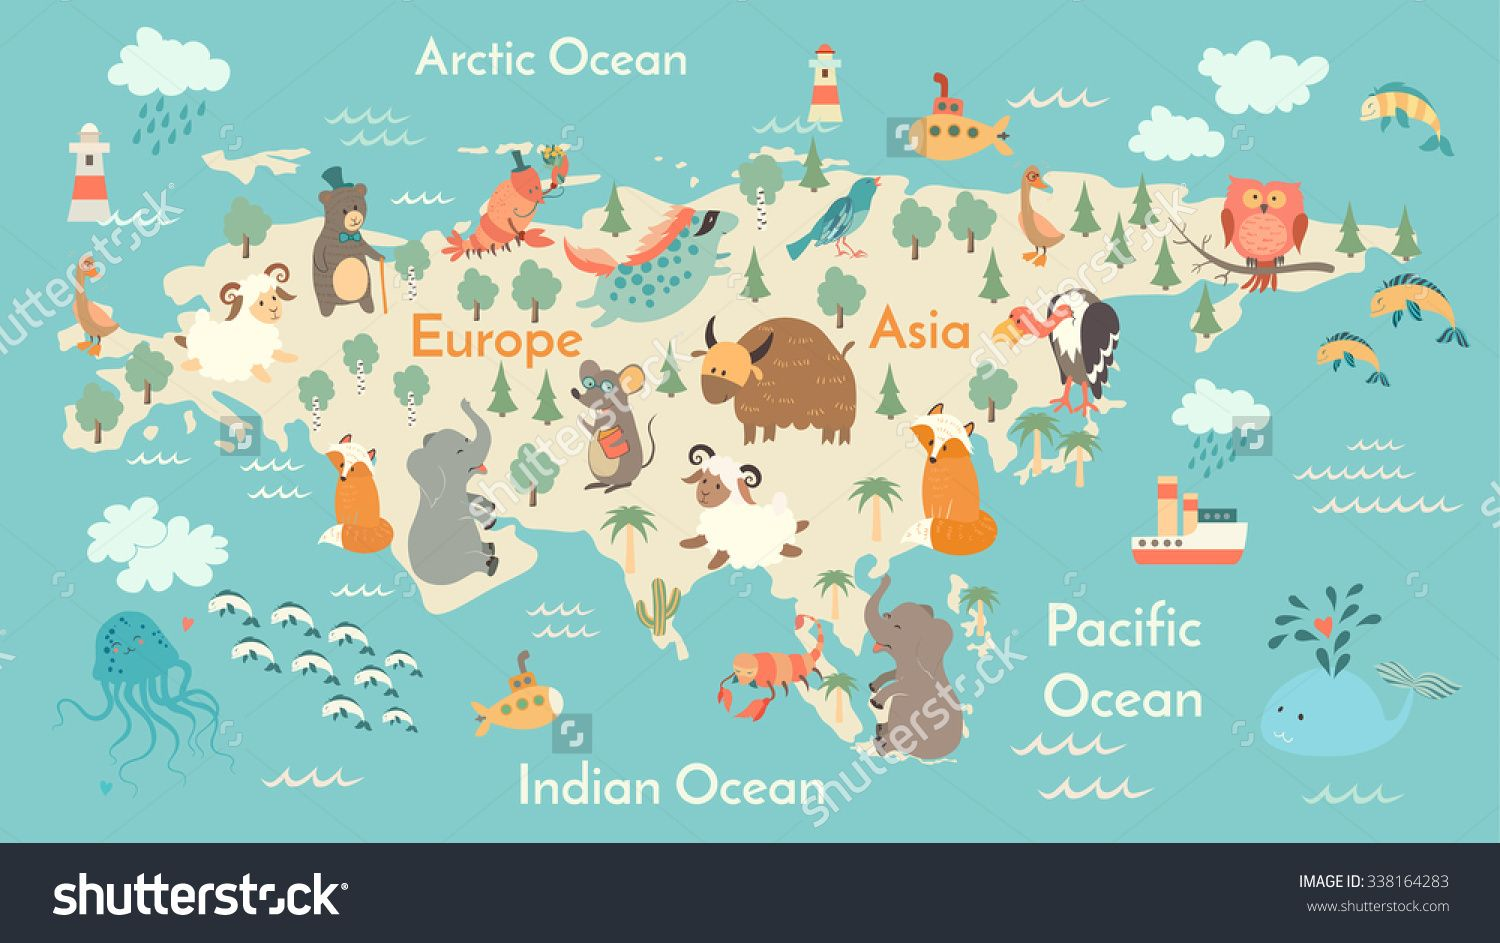 Animals World Map Eurasia Eurasia Map For ChildrenKids Eurasian